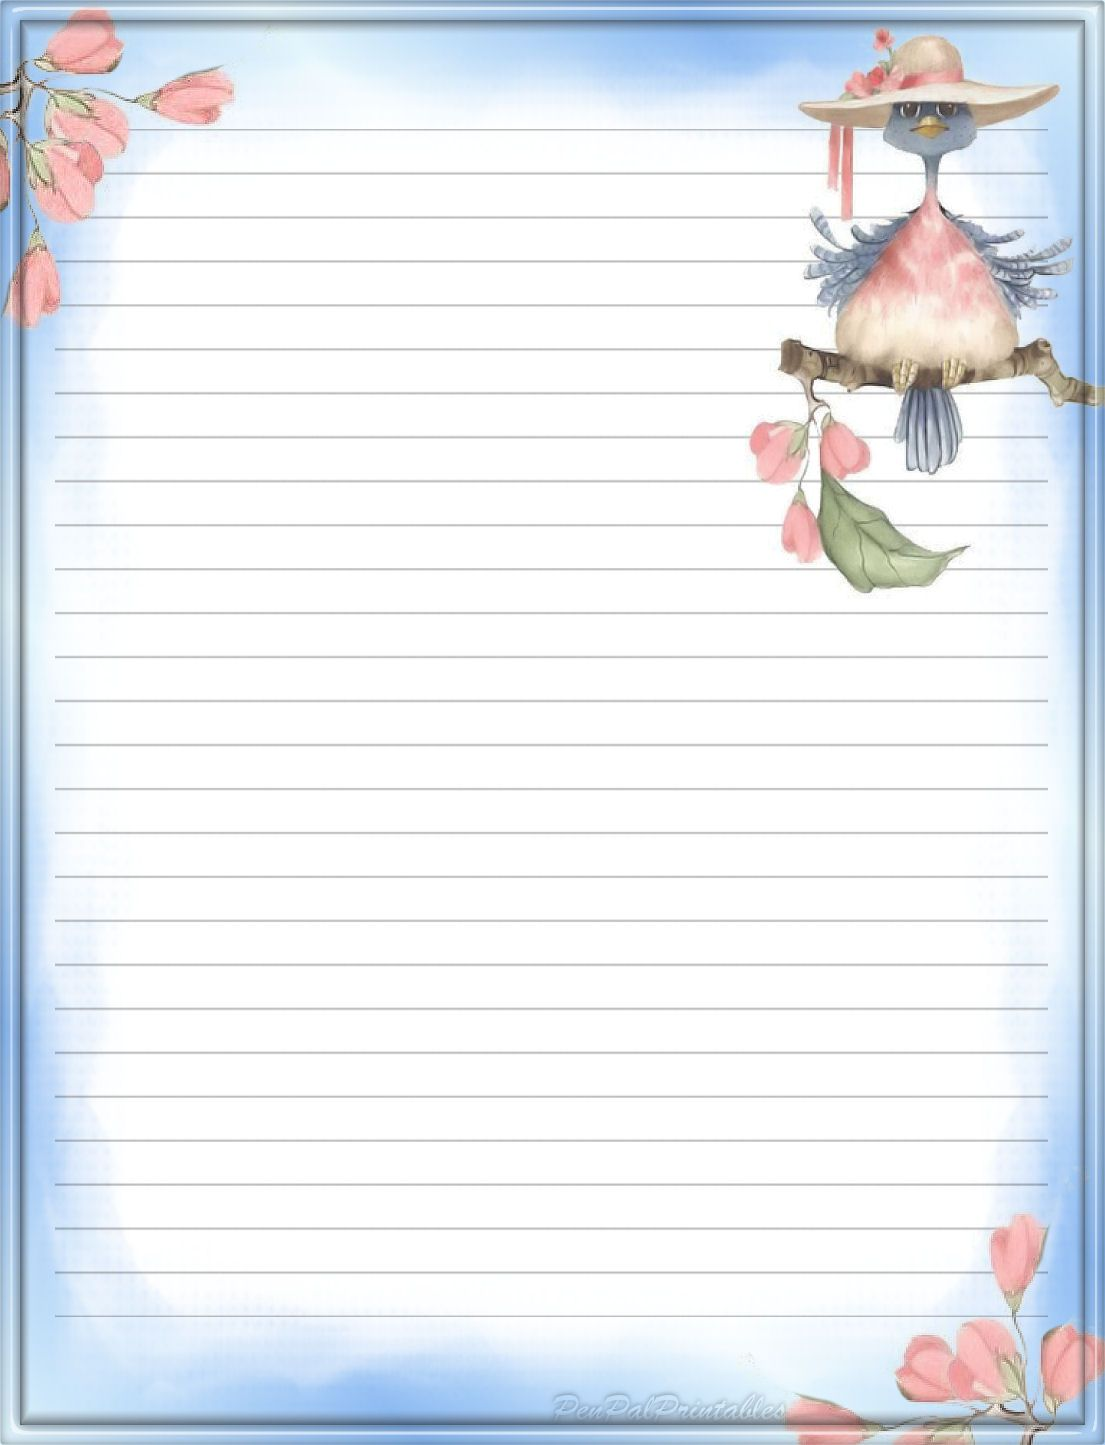 Blue Bird Lined Stationery Paper Free Printable